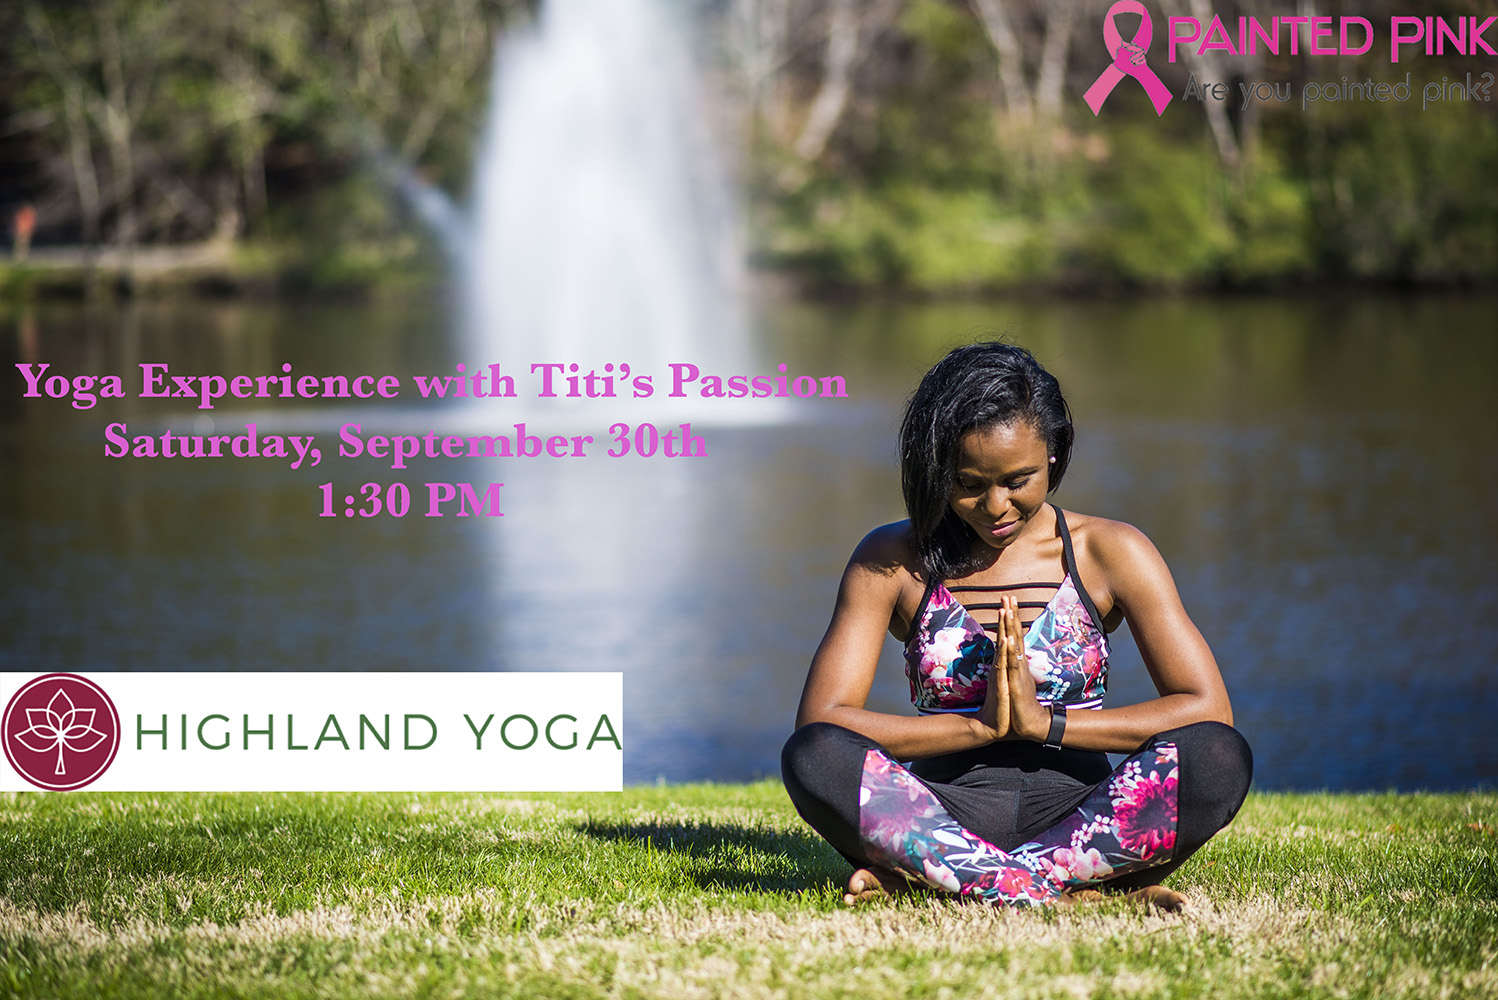 Passionate about Painted Pink: Titi's Passion Yoga Experience